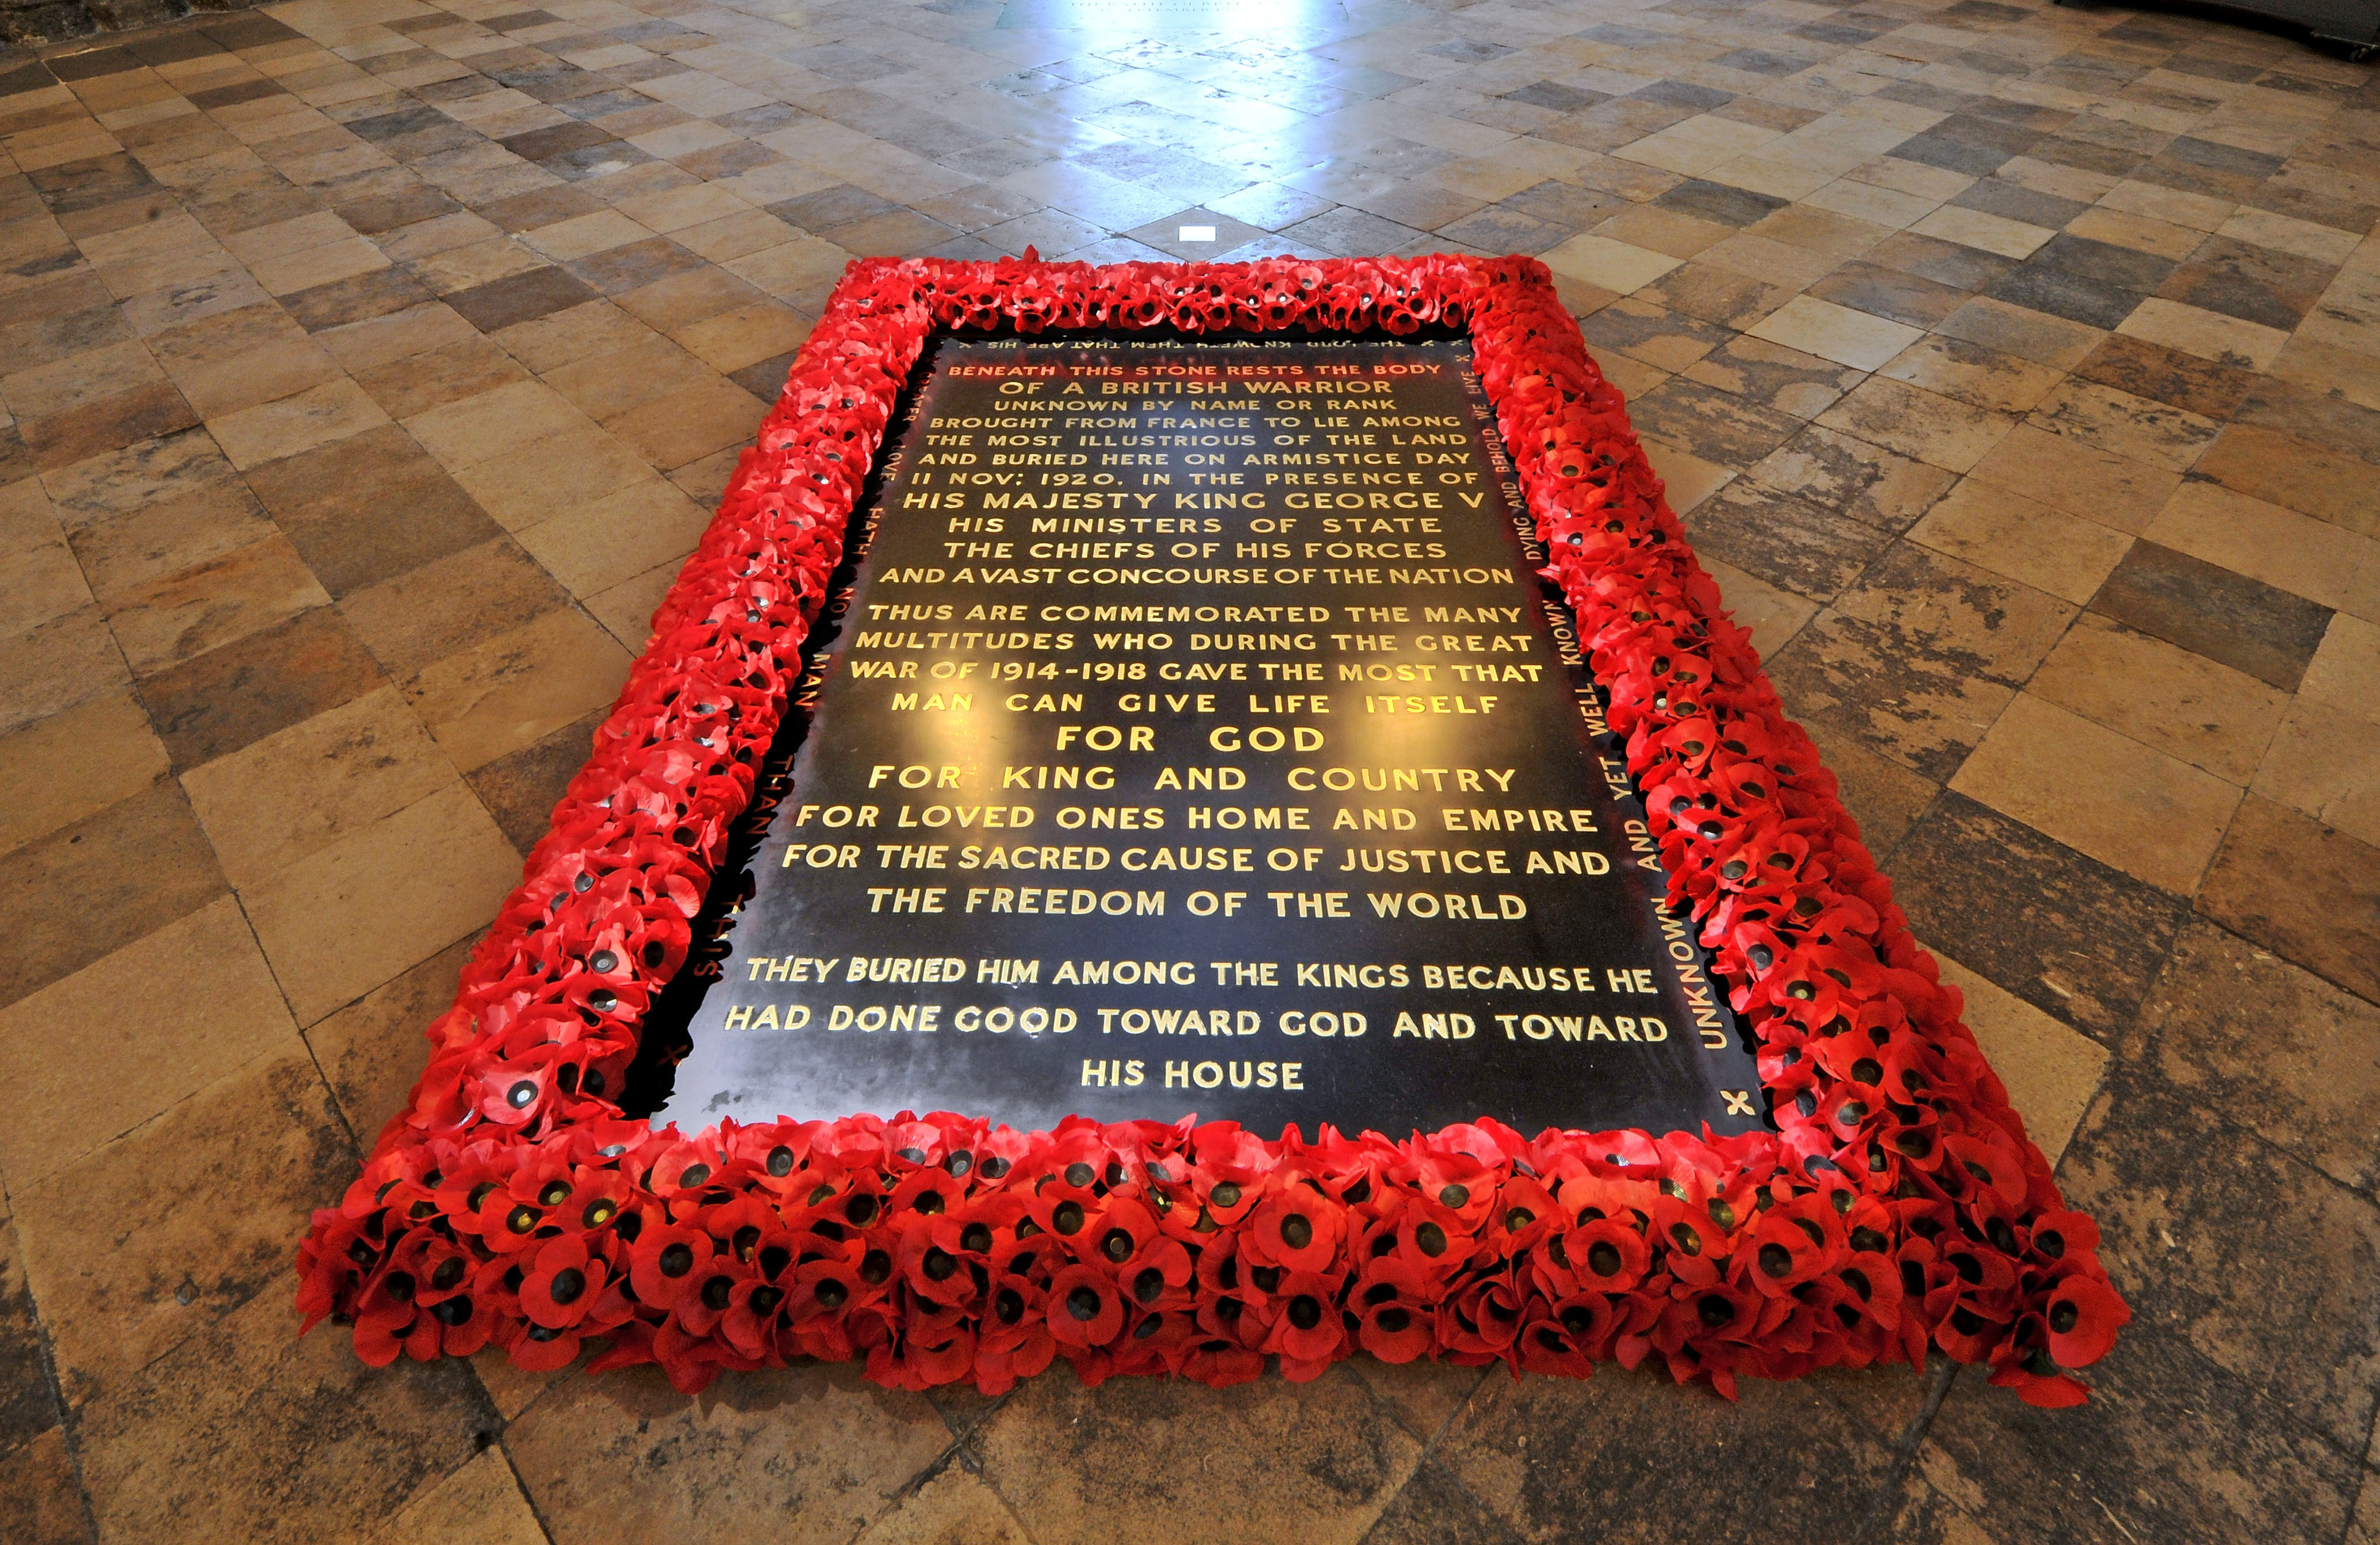 The Grave of the Unknown Warrior